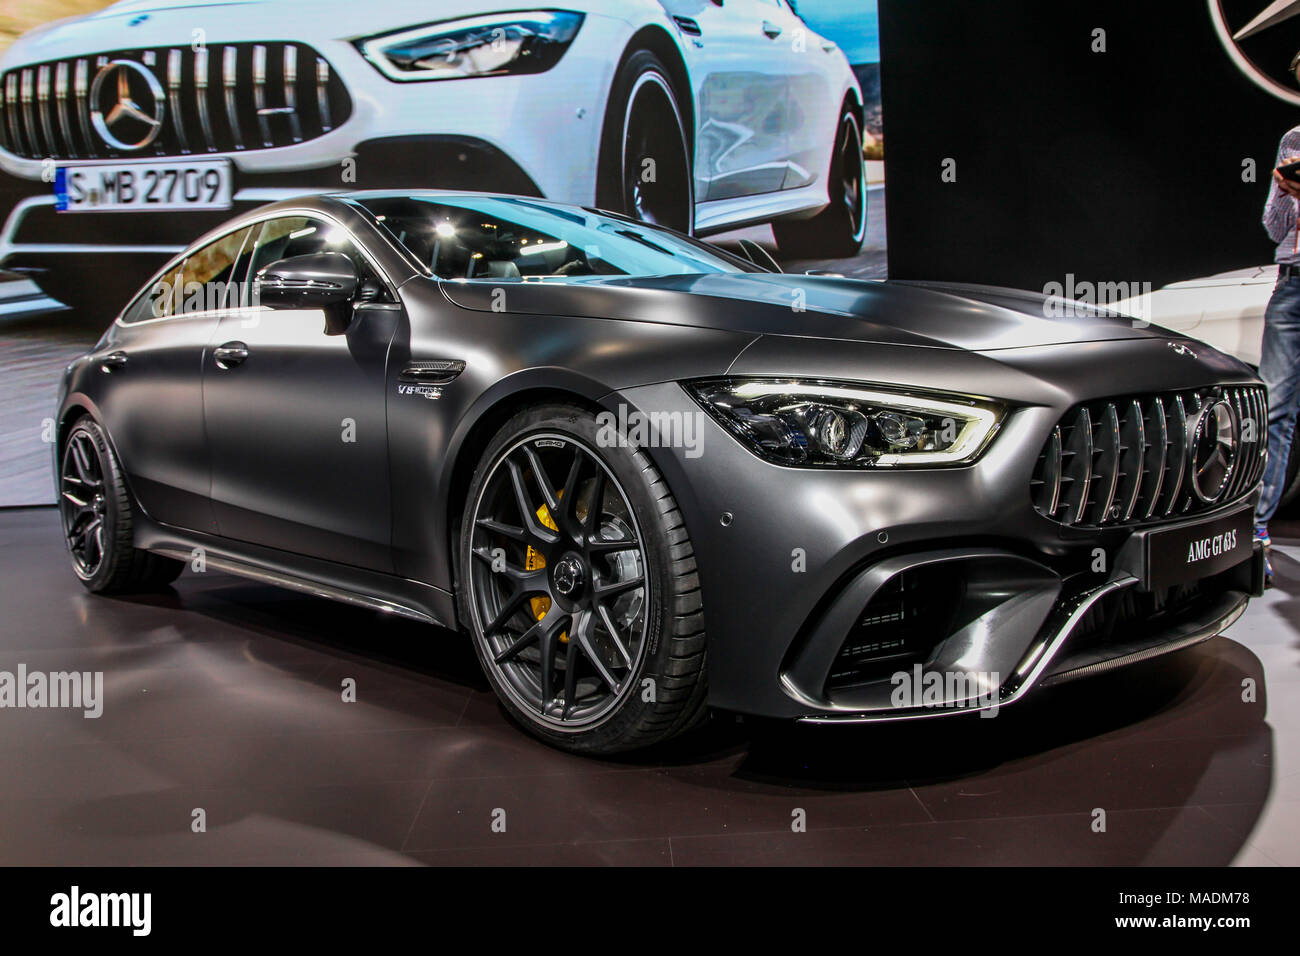 amg gt stock photos amg gt stock images alamy. Black Bedroom Furniture Sets. Home Design Ideas